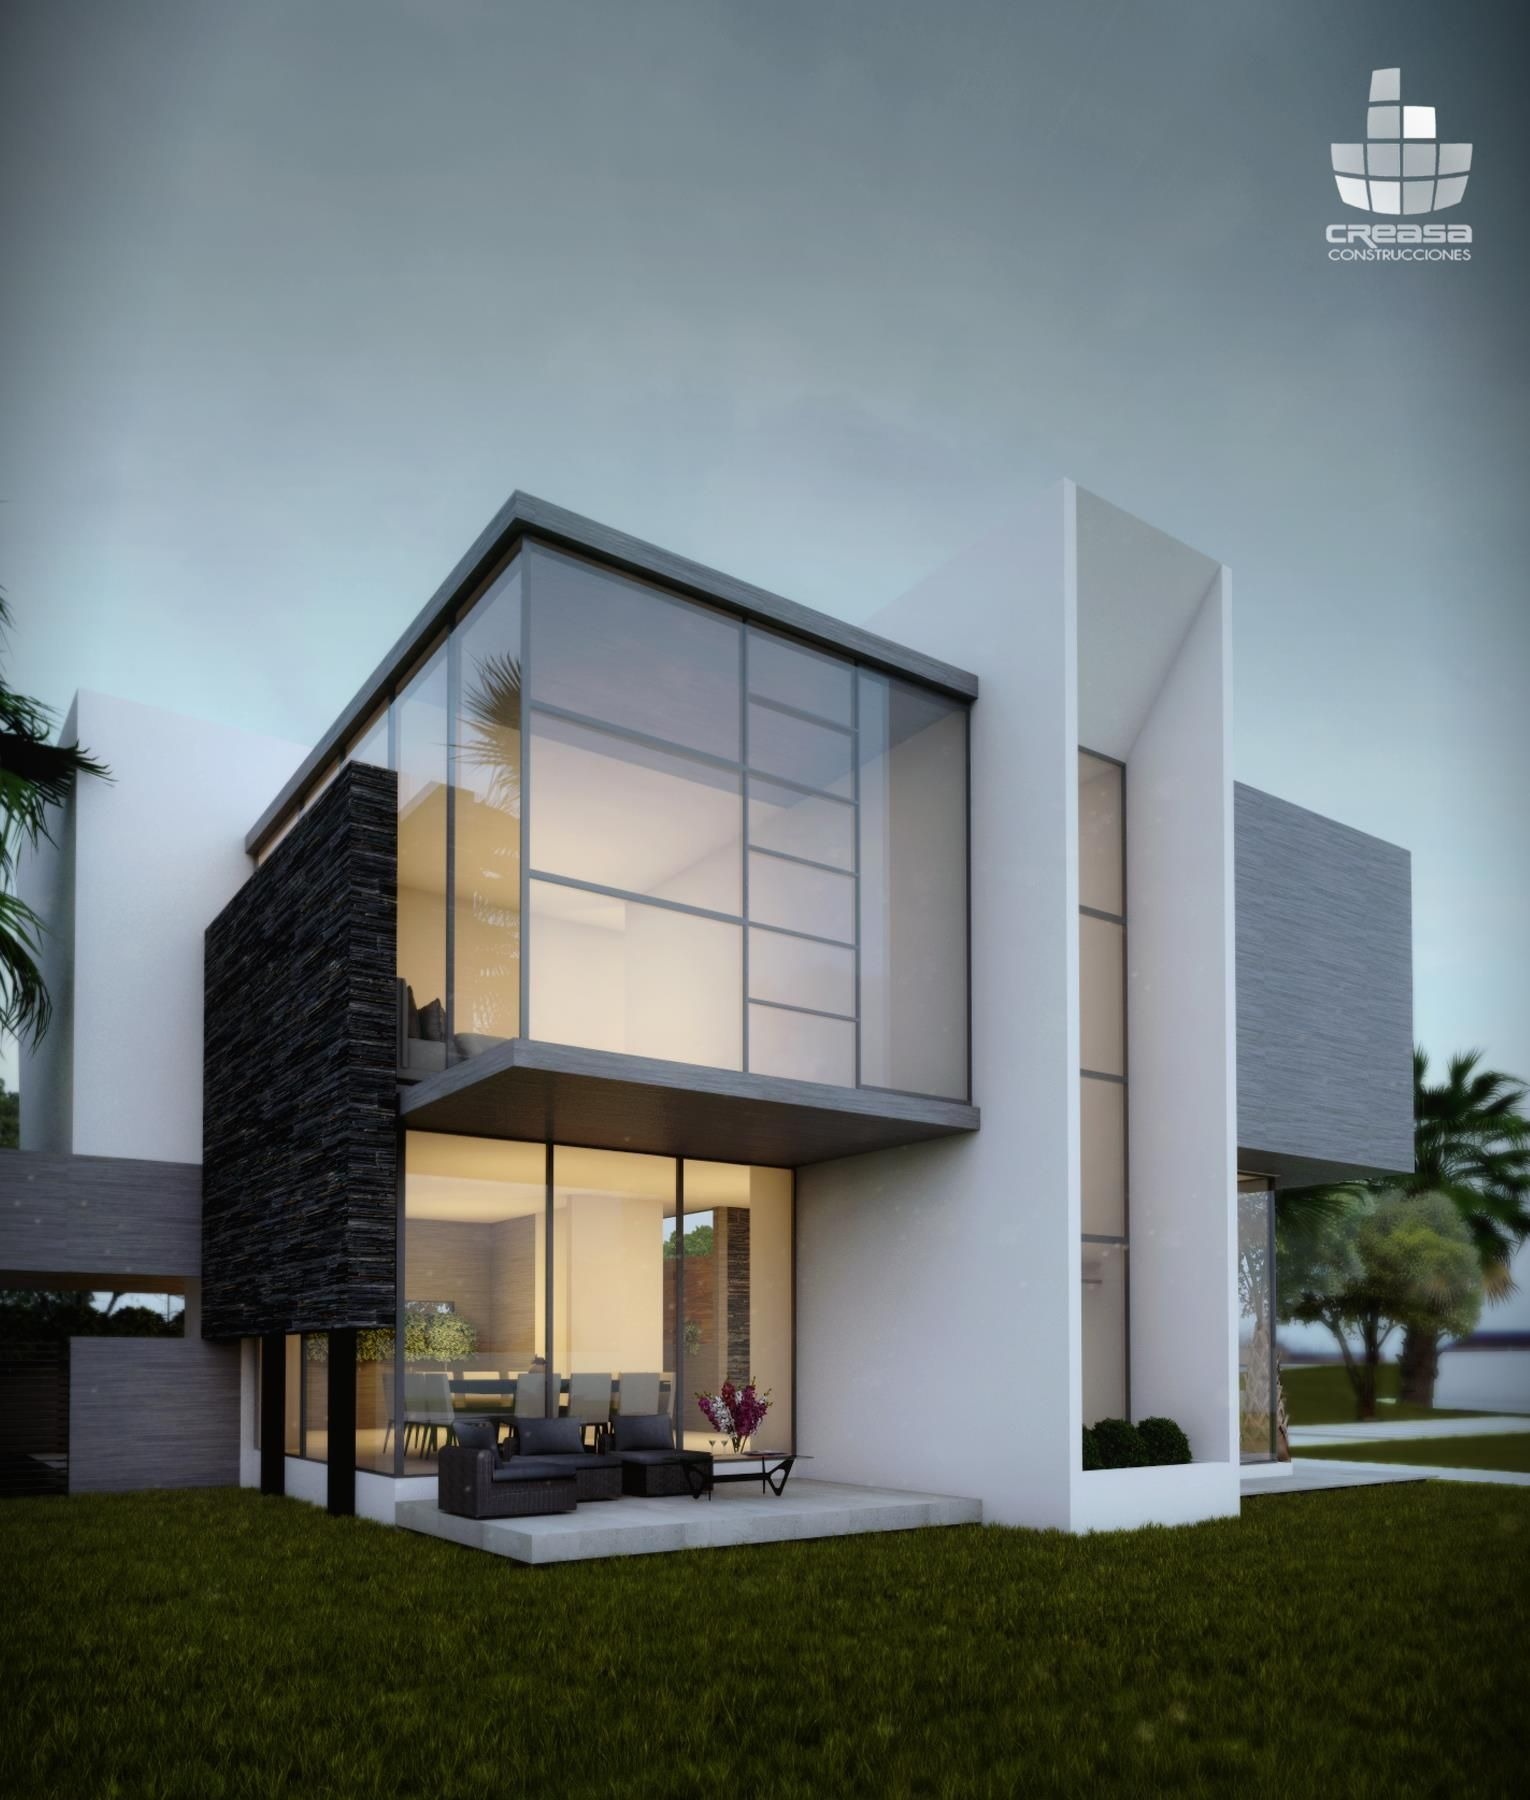 Creasa modern architecture pinterest villas house for Home structure design